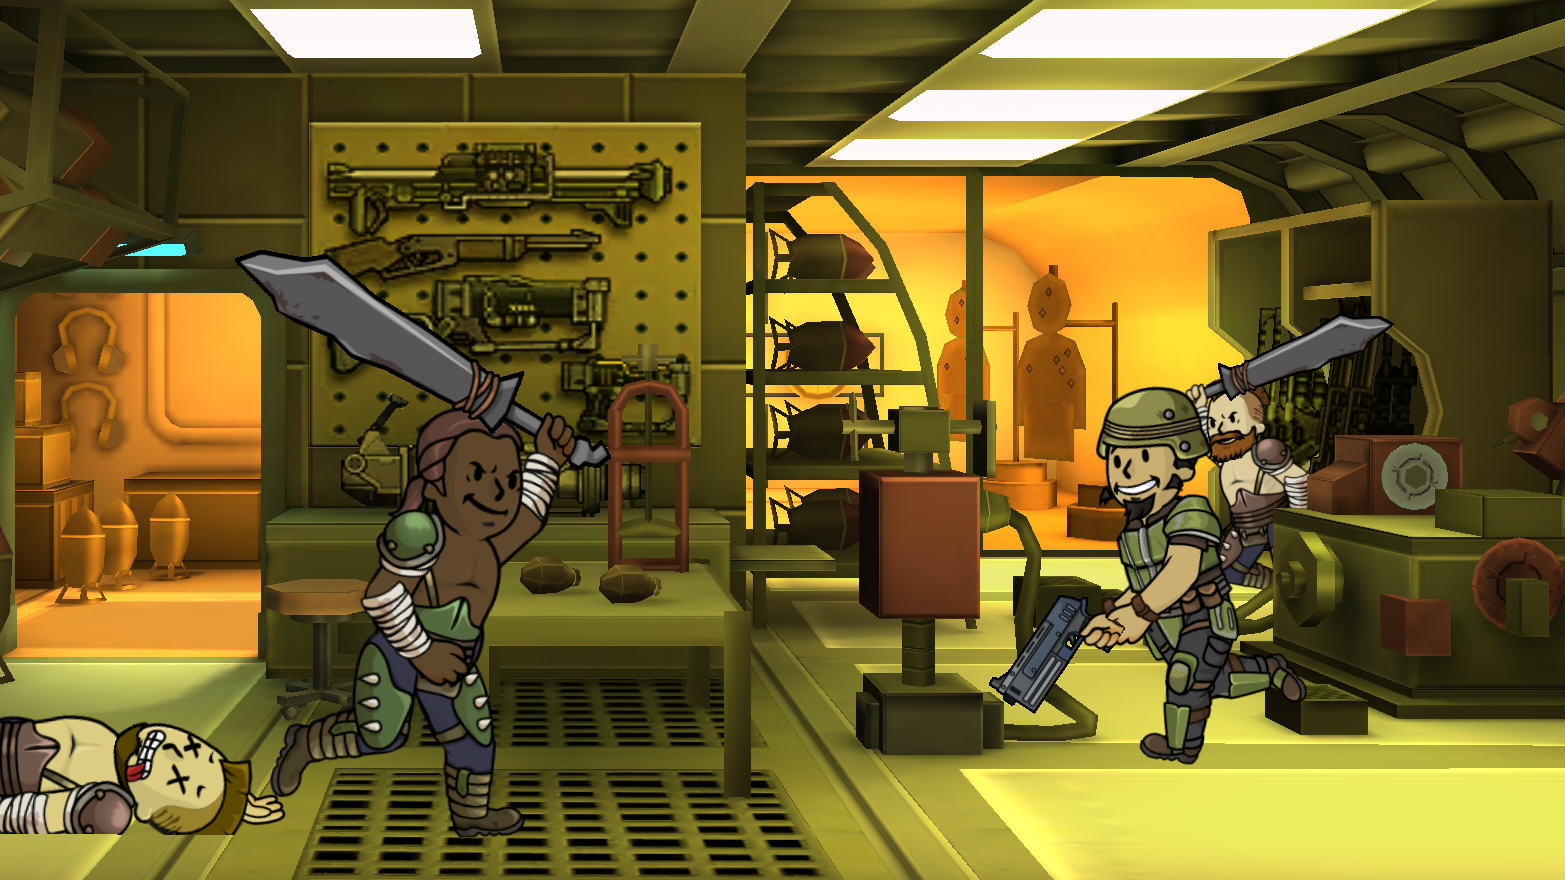 FalloutRaiders Bethesda Confirm More Mobile Games After Success Of Fallout Shelter